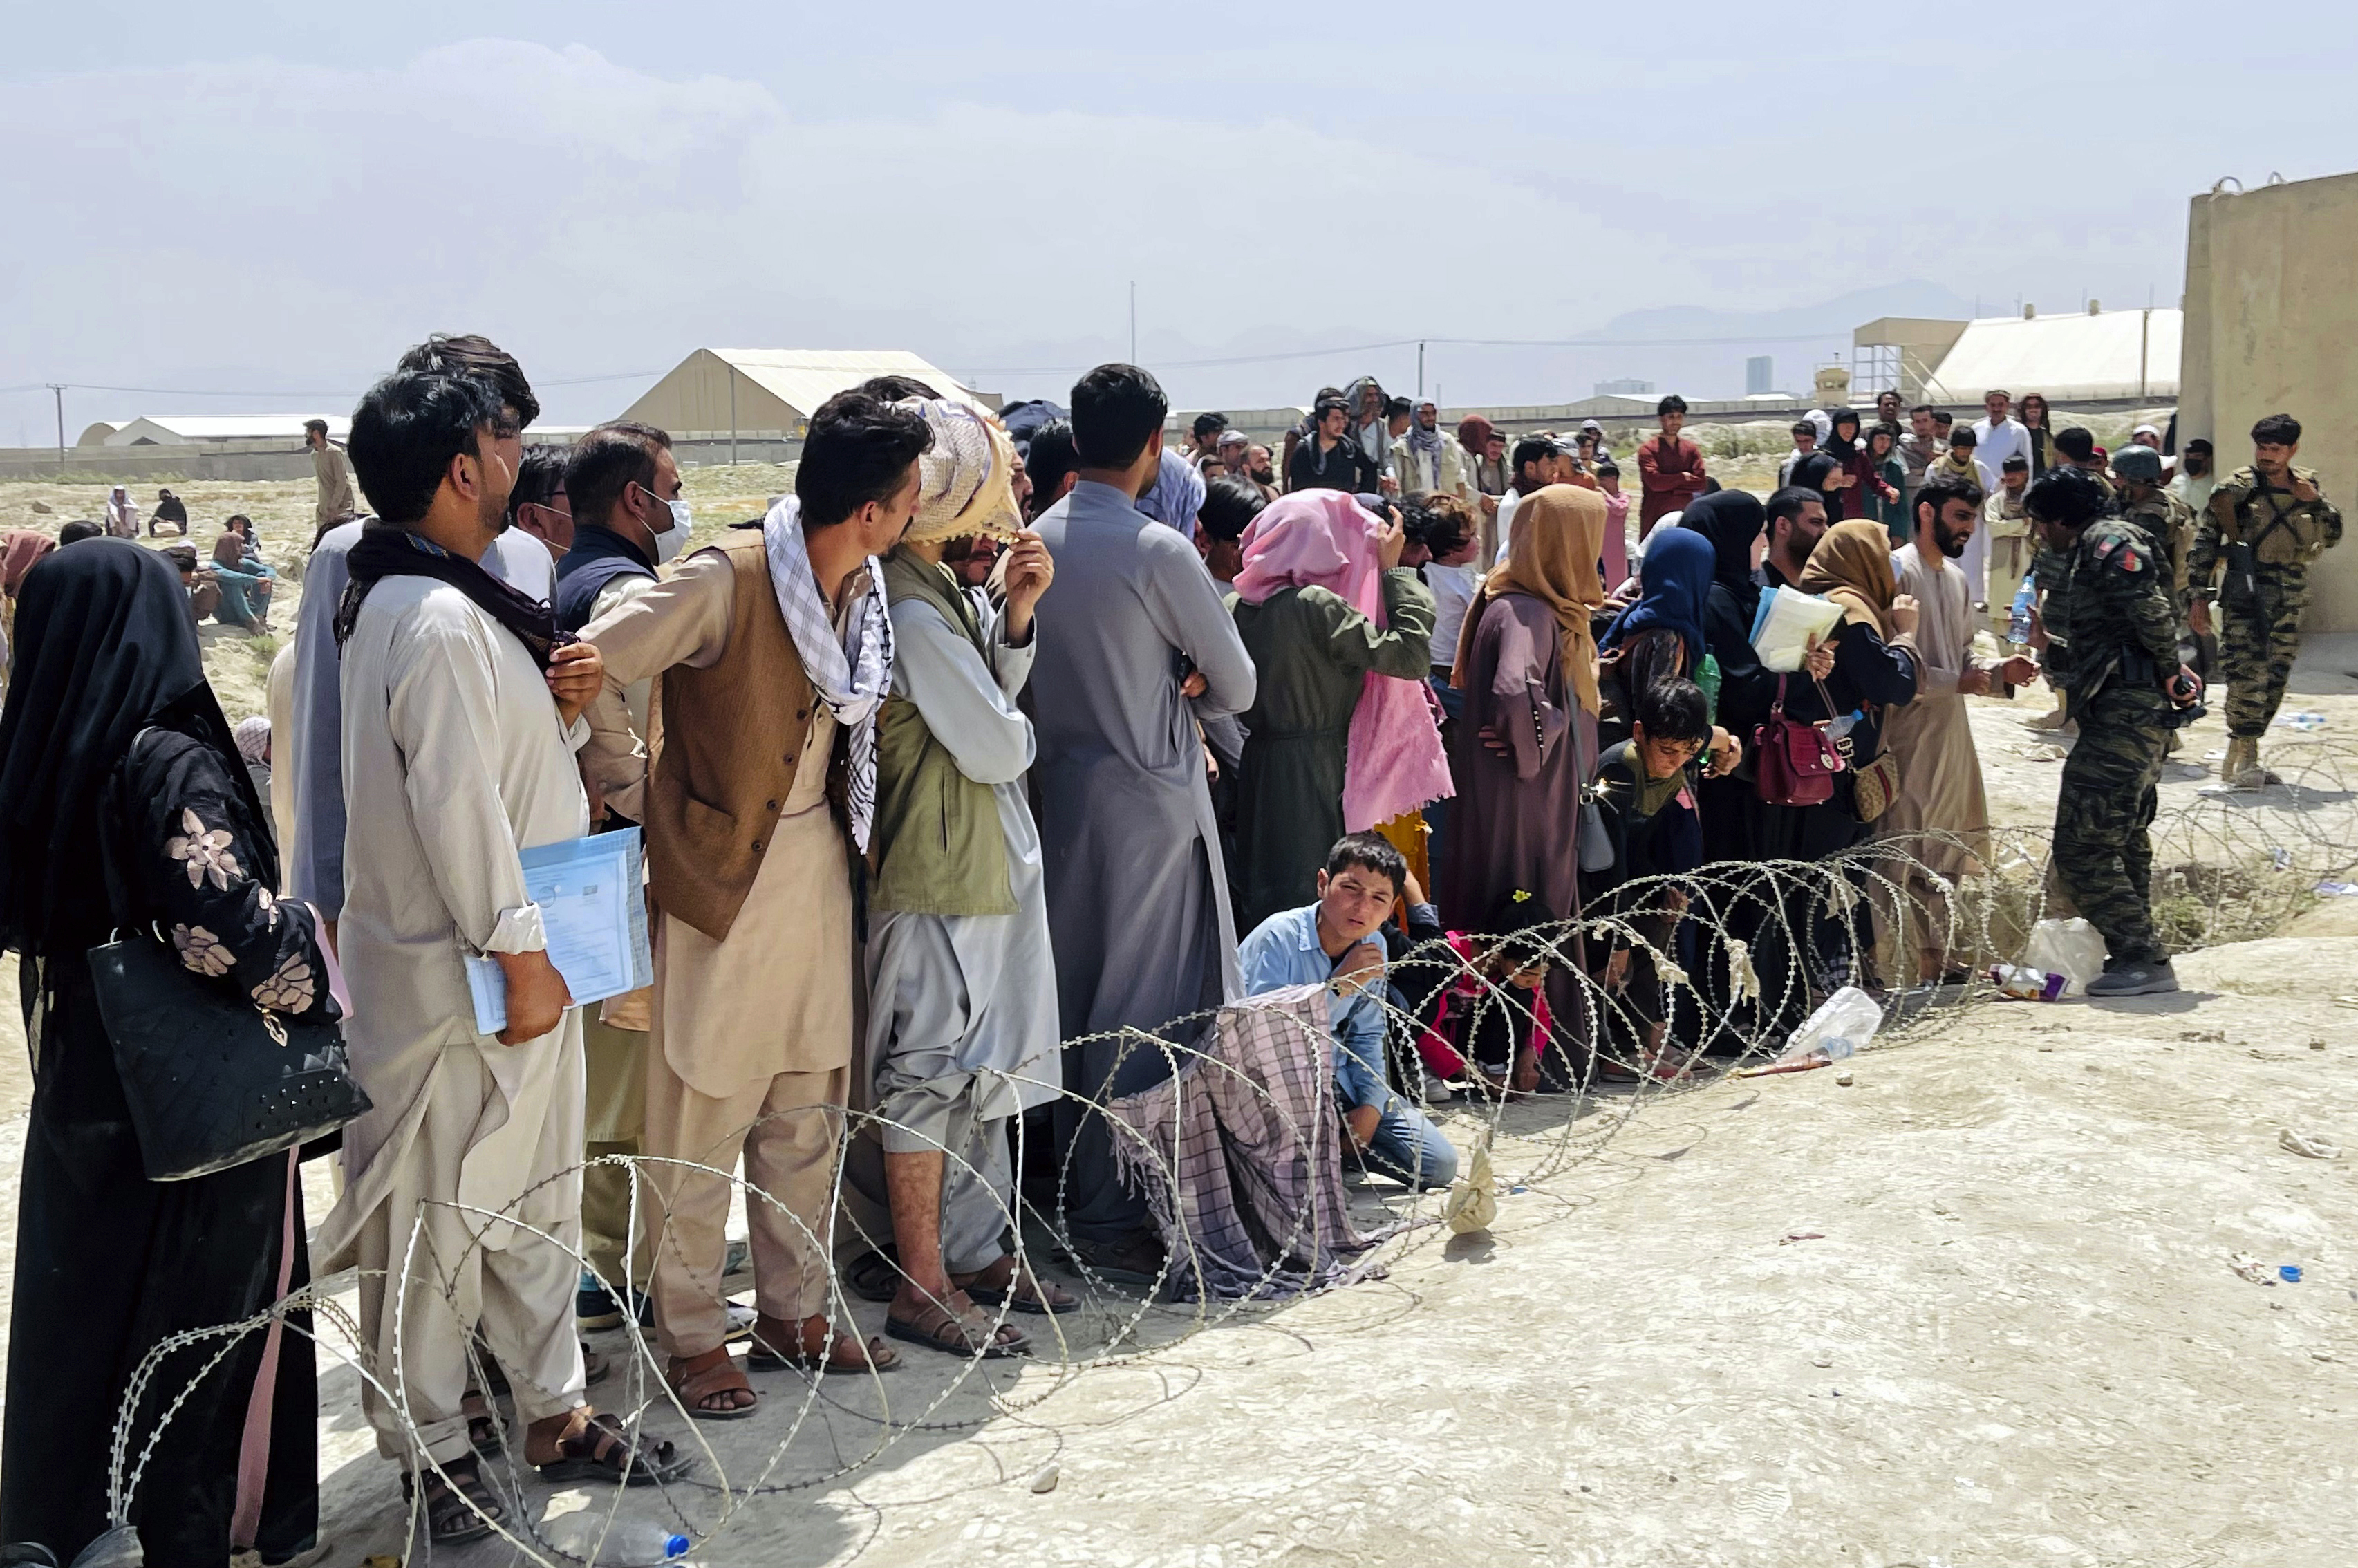 Perilous Situation for Afghan Allies Left Behind Shows a Refugee System That's Not Up to the Job